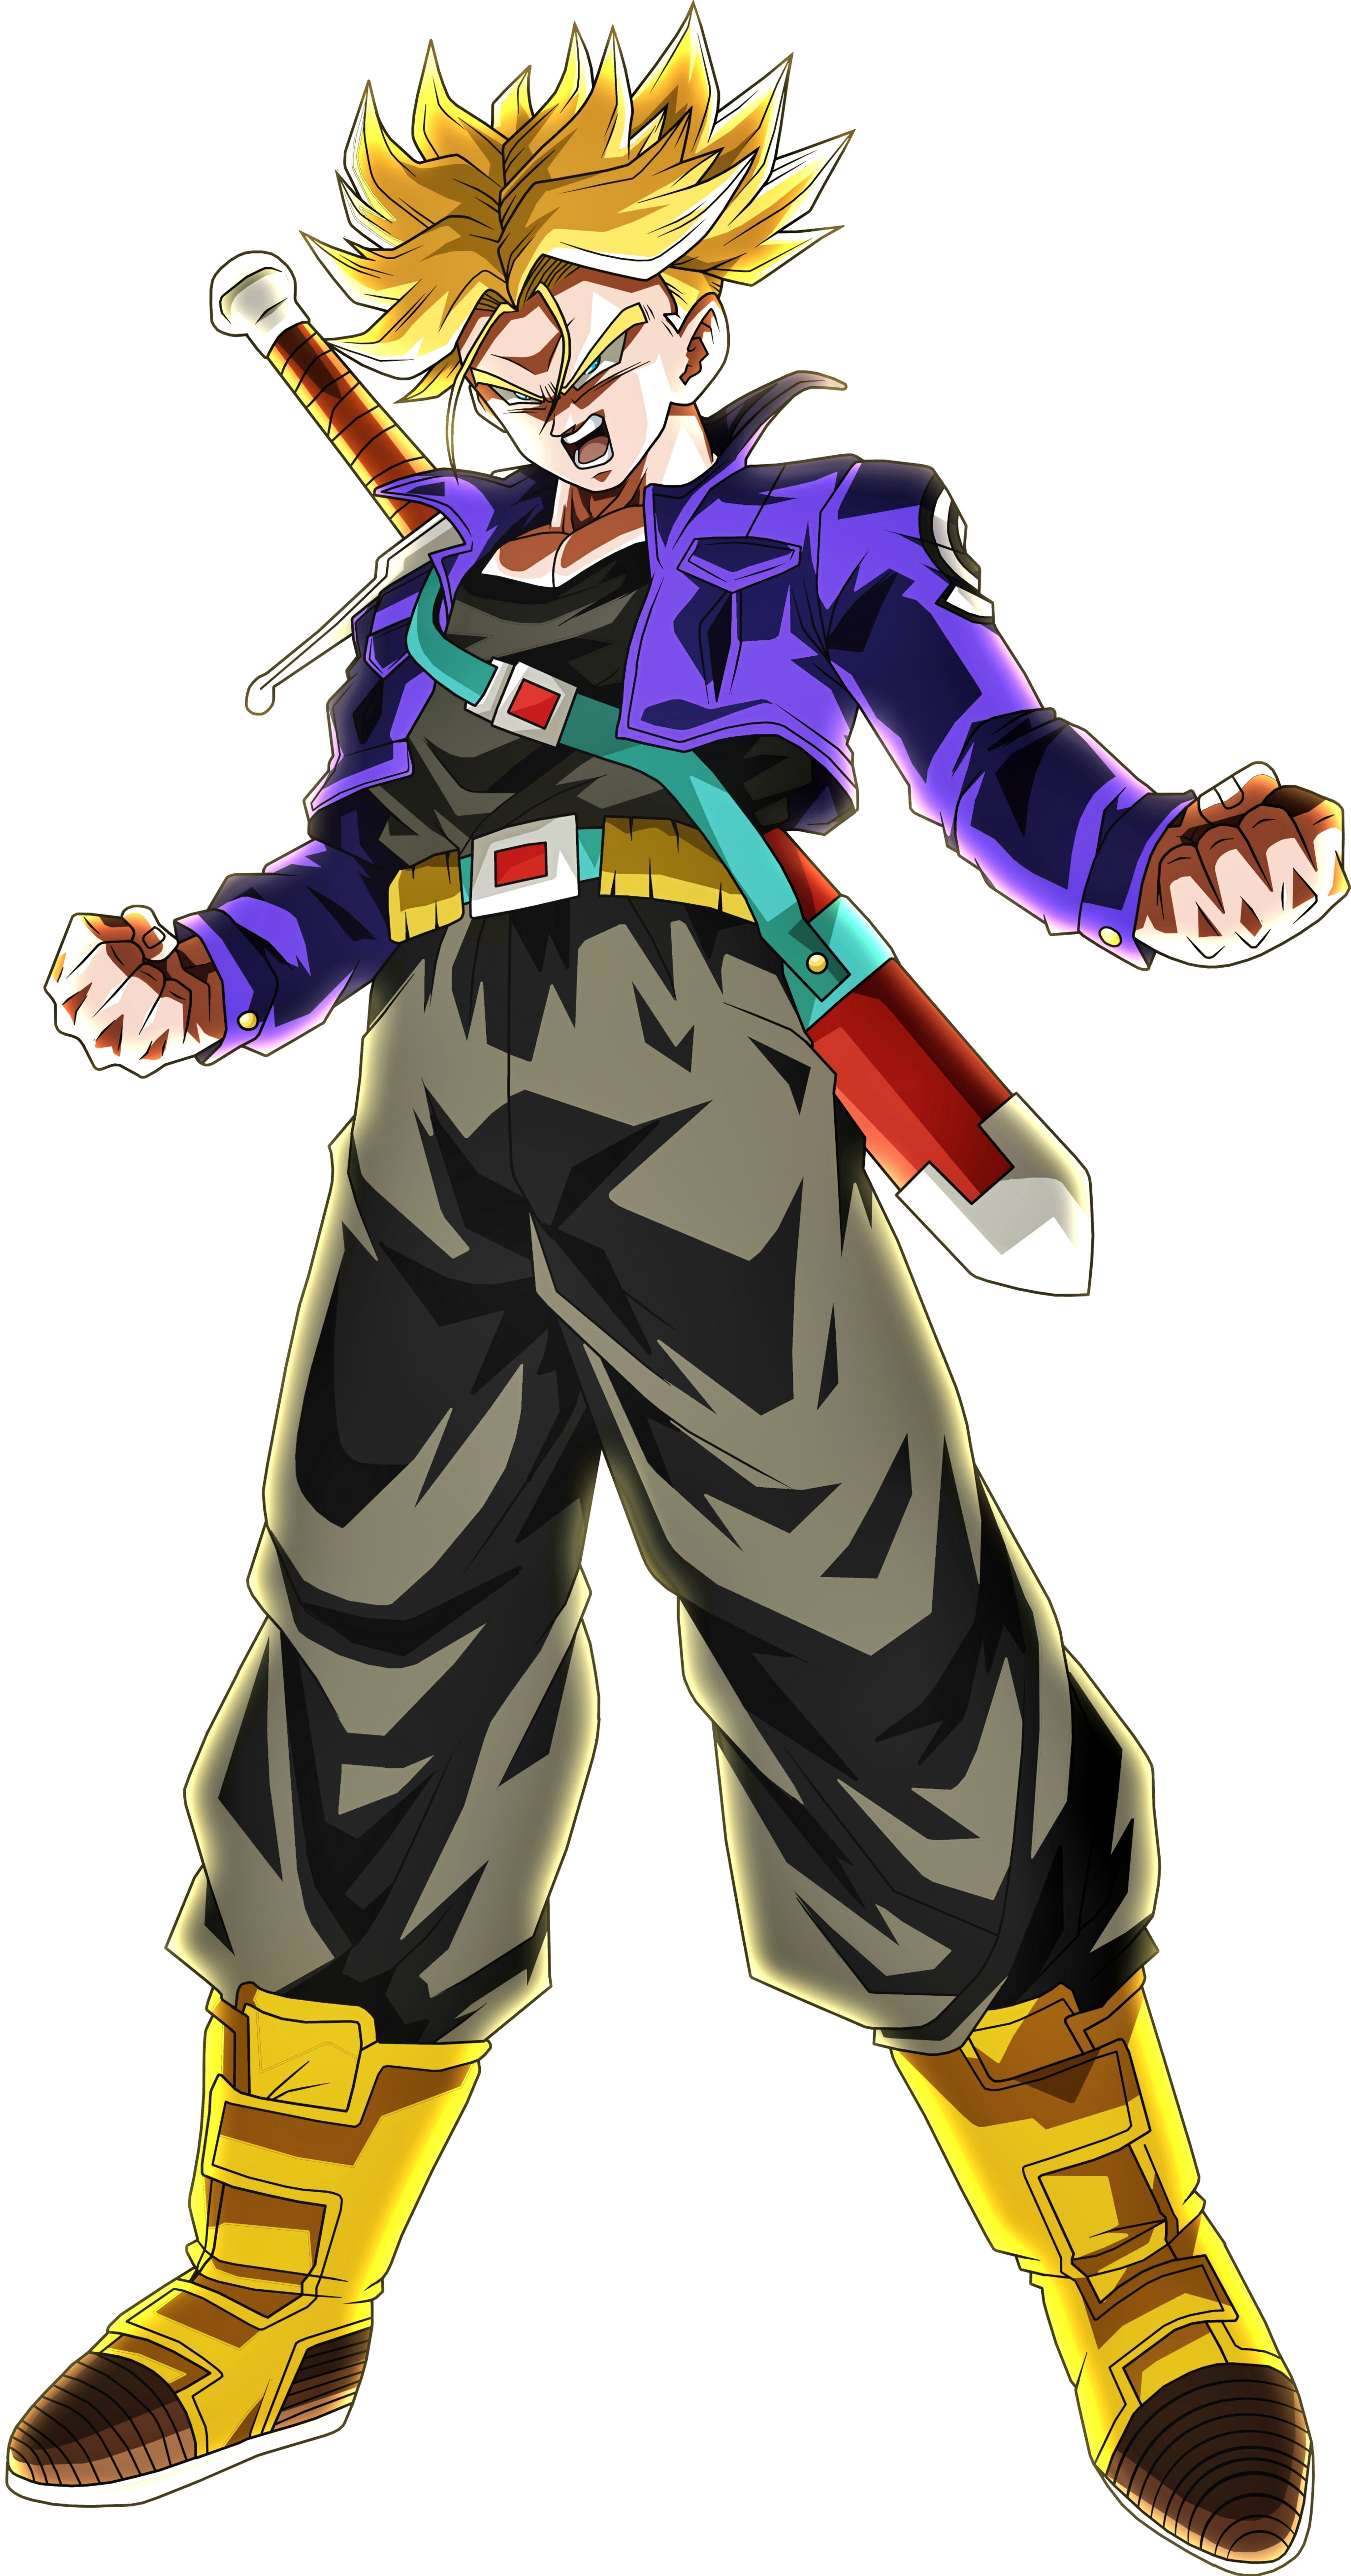 Trunks Del Futuro Ssj Anime Dragon Ball Dragon Ball Art Dragon Ball Goku